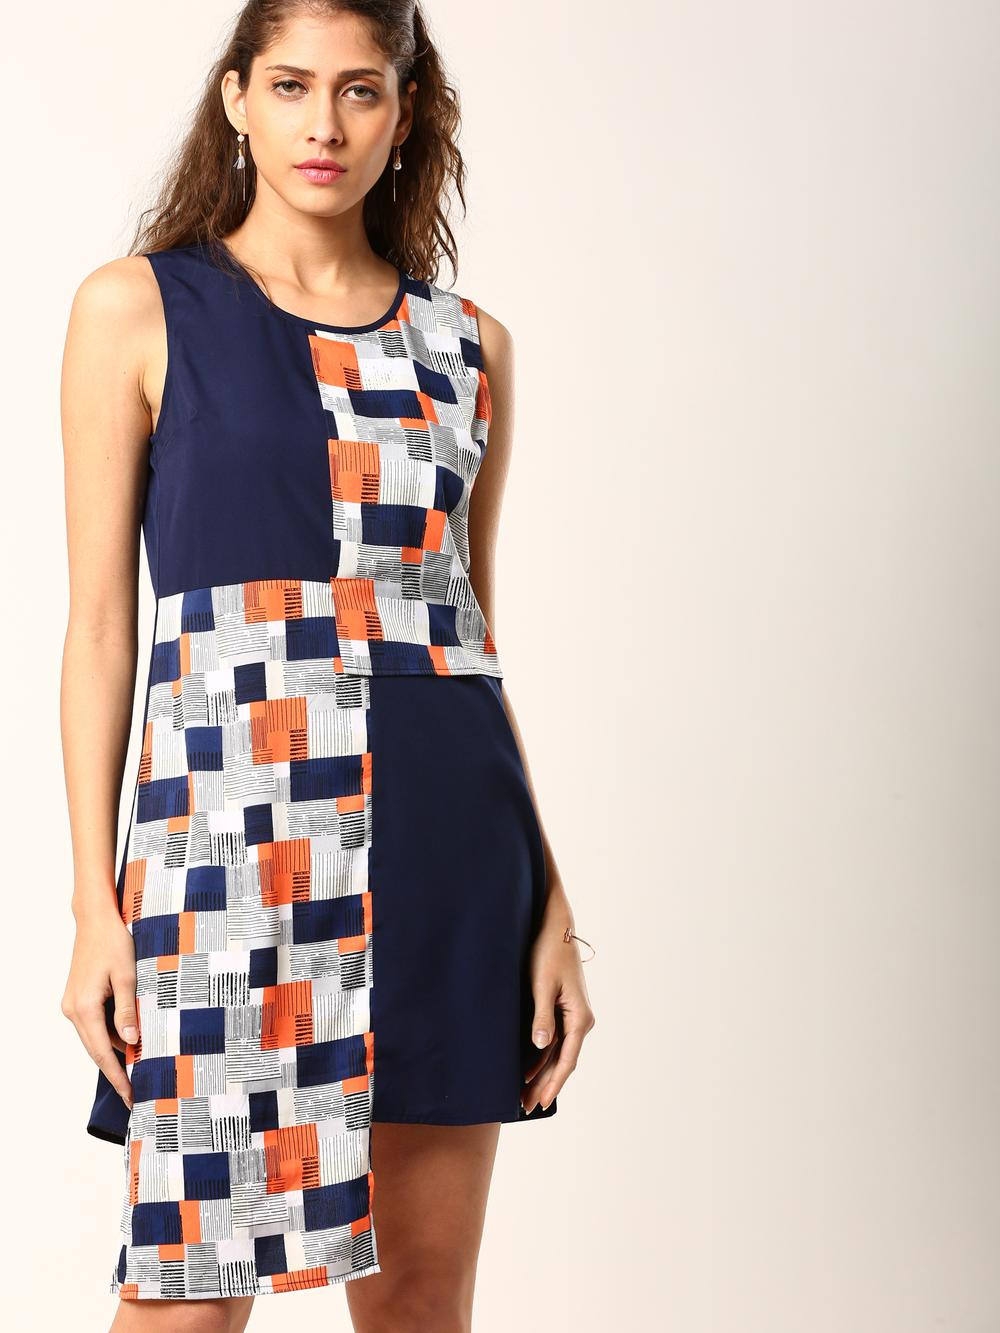 619dad3a1499 Abof Women Dresses - Buy Dresses For Women Online in India